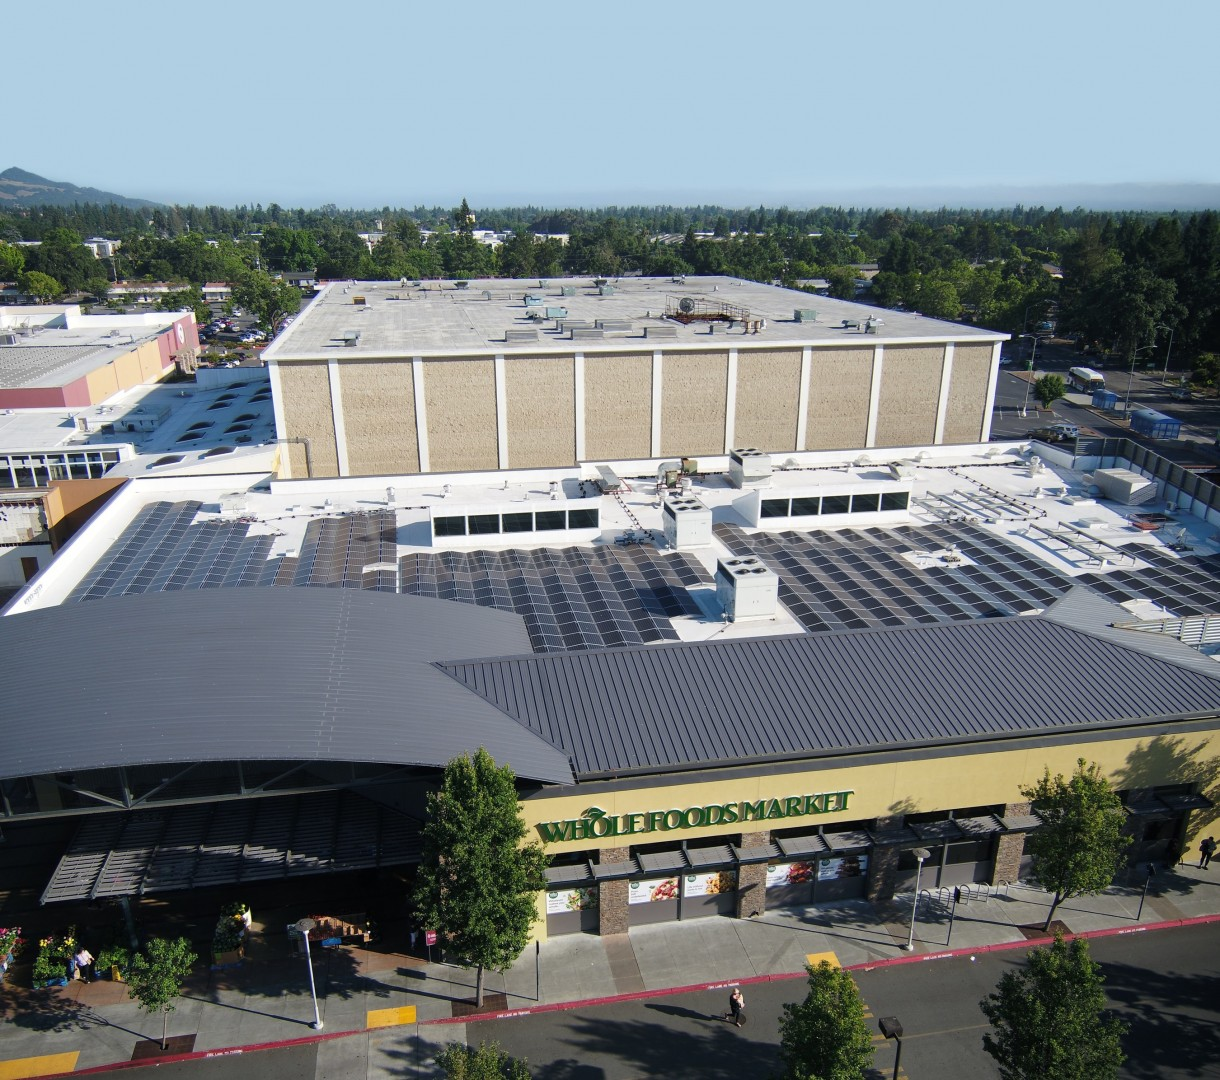 With these PV installations, each Whole Foods grocer is expected to replace 25% of traditional grid energy use on average. Image: SunPower